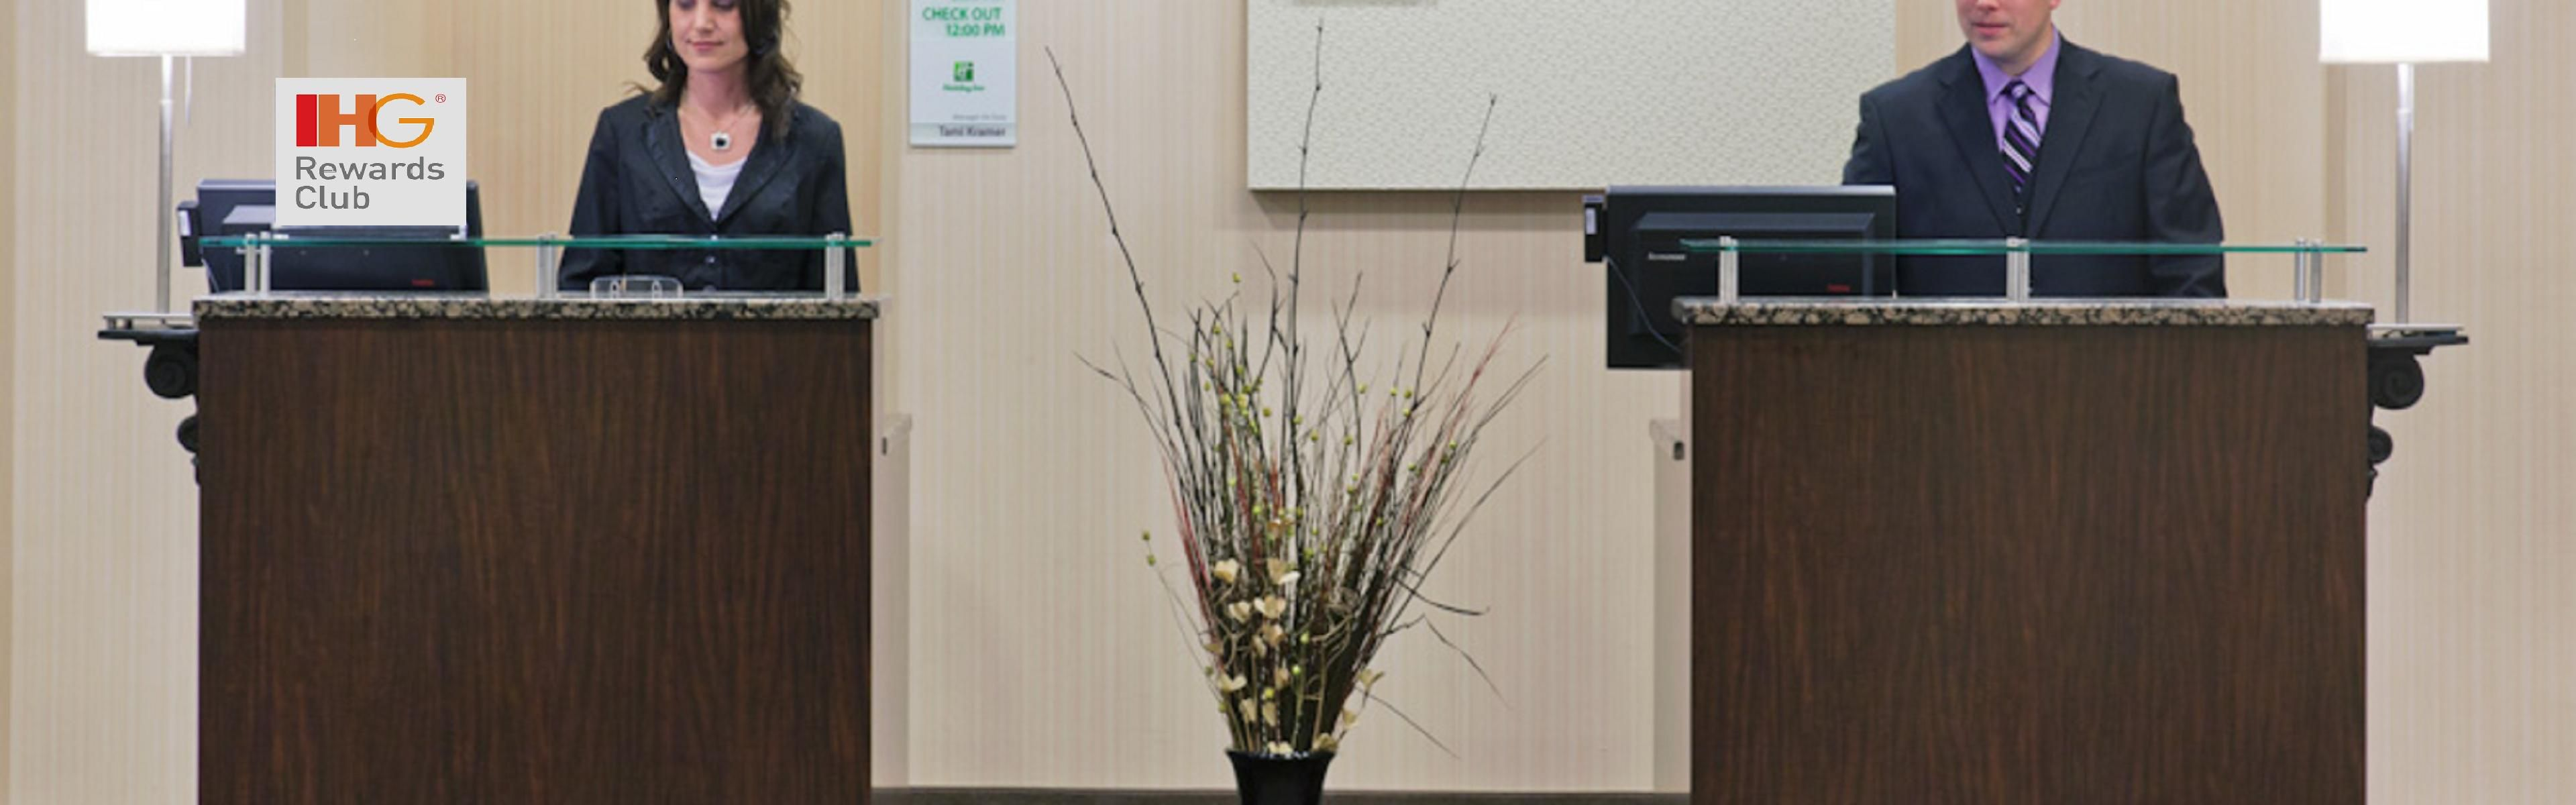 Welcome Front Desk; Thank You For Being Our Guest.